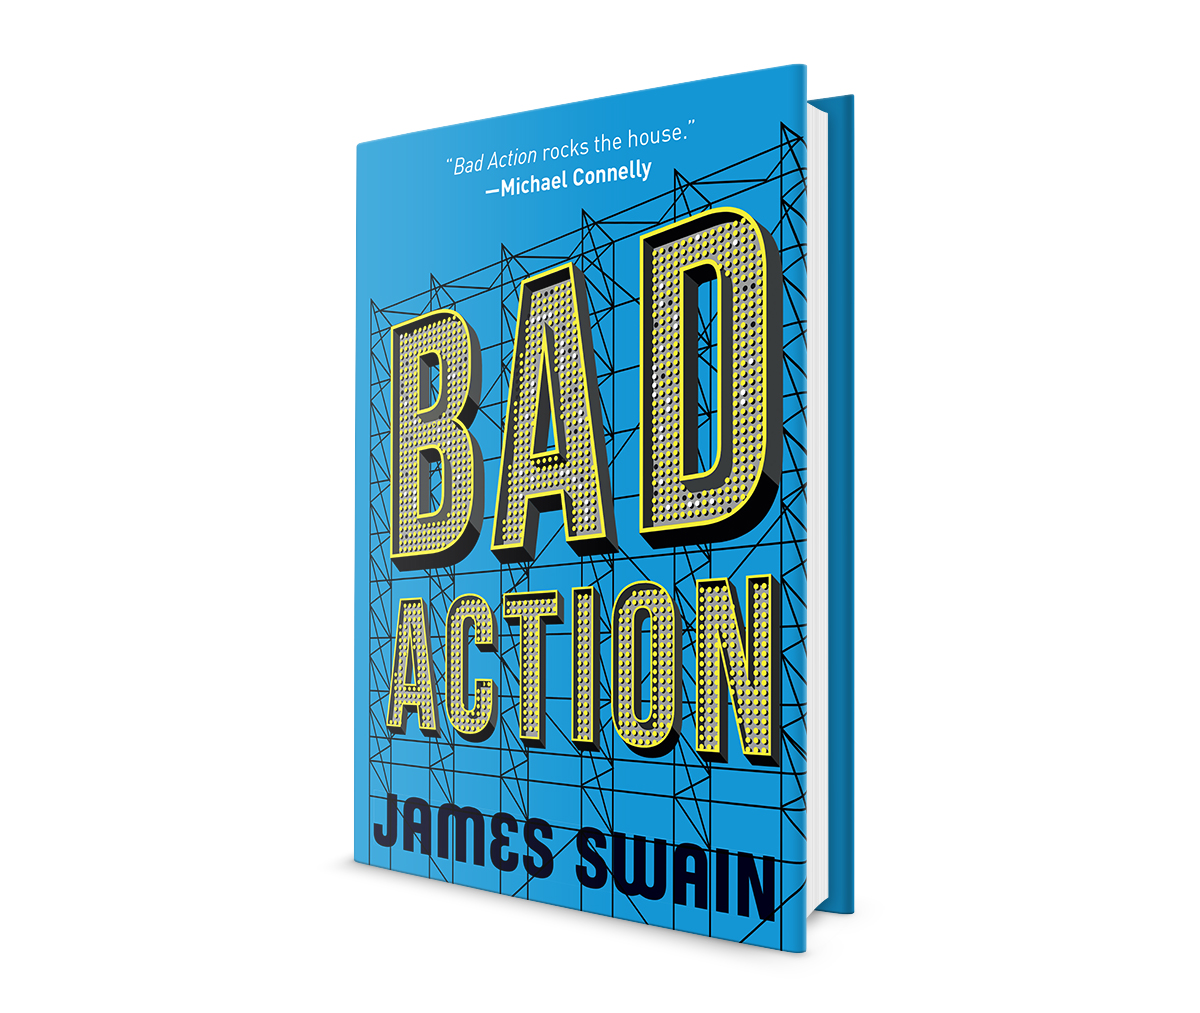 BadAction_cover3.jpg